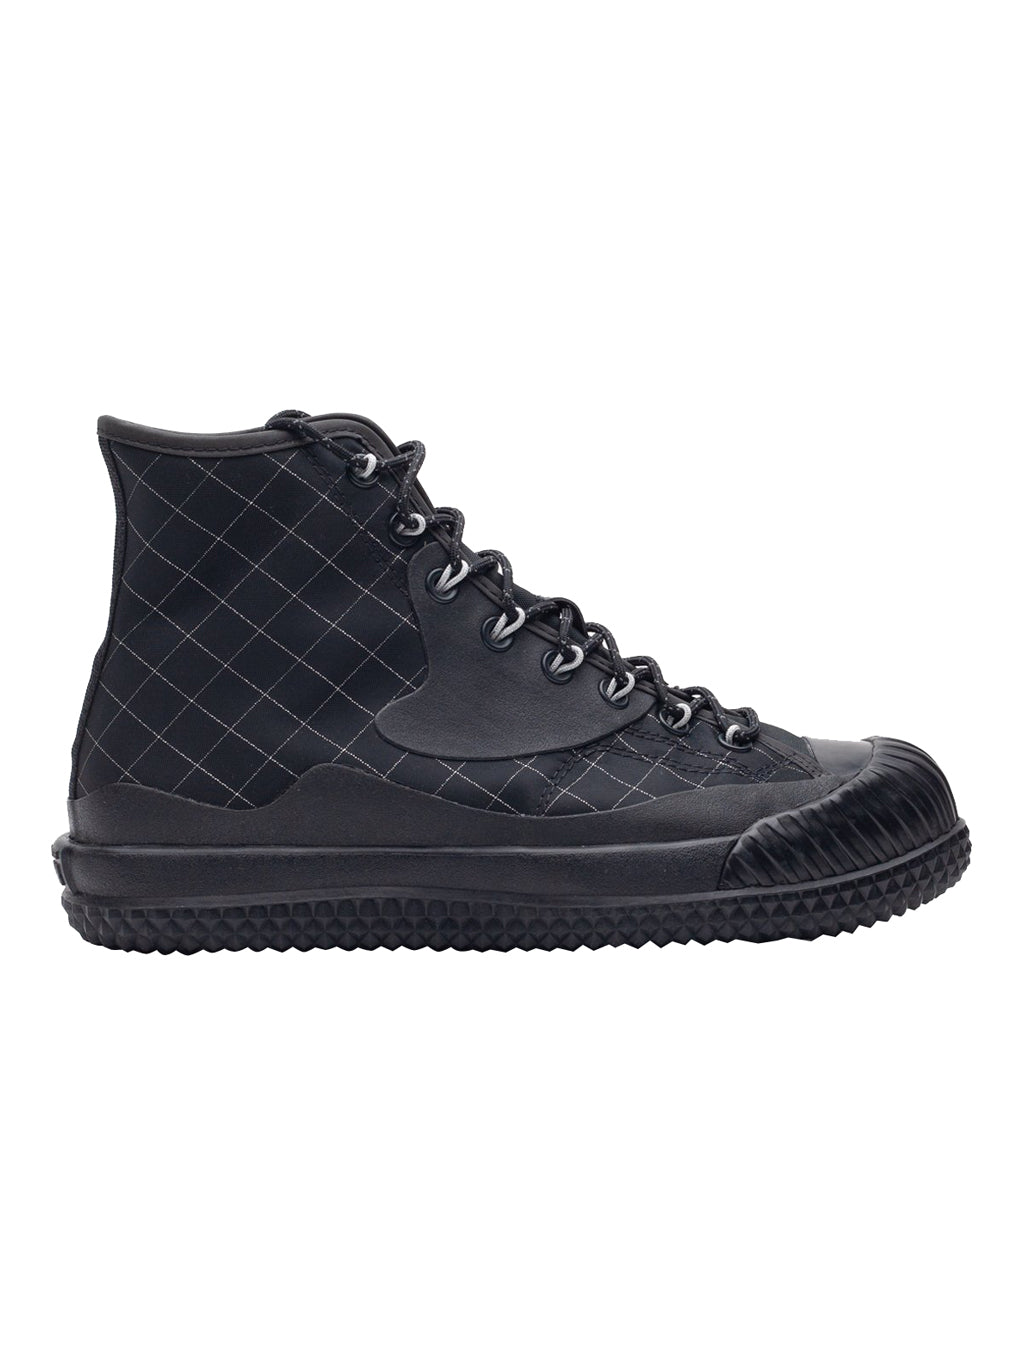 Black  x Slam Jam Bosey MC Hi Sneakers